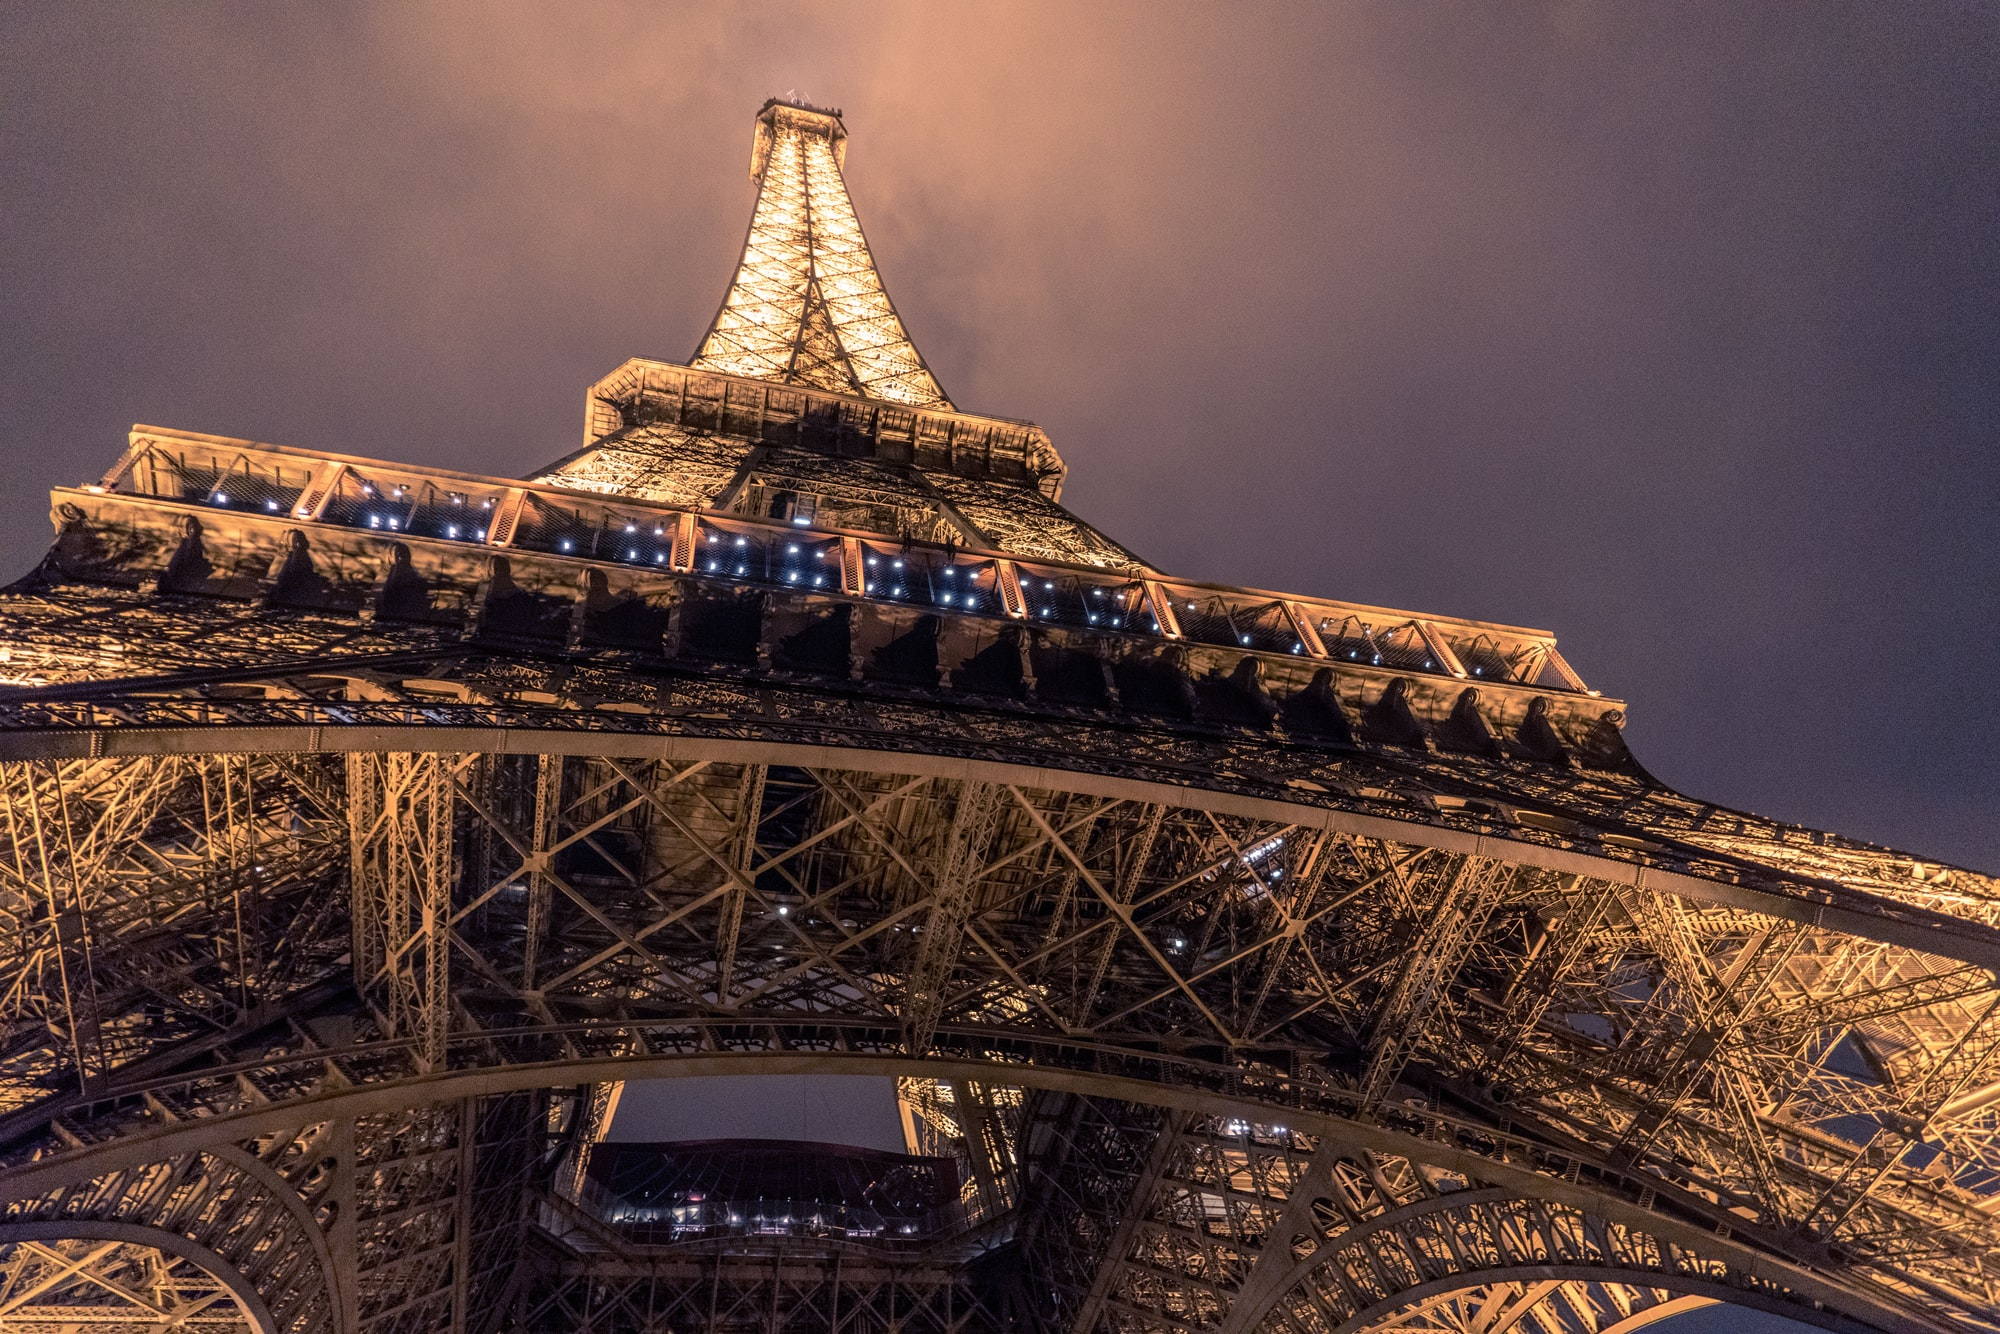 Street view of Eiffel Tower